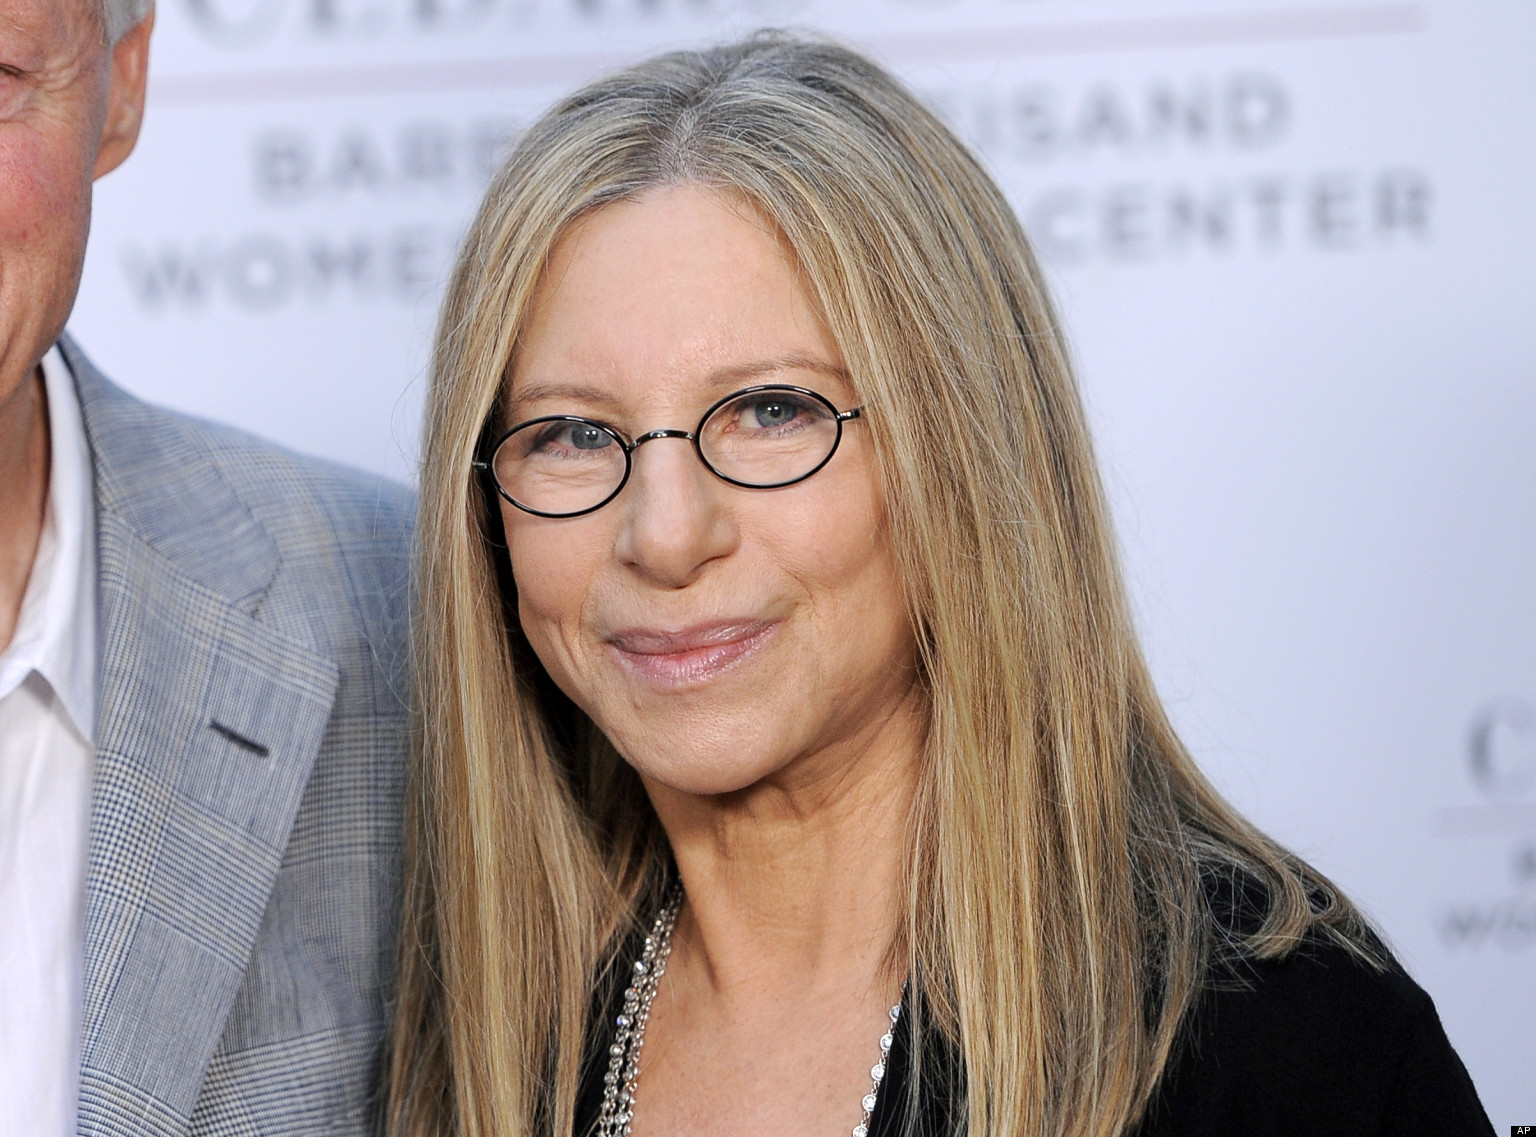 """FILE - In this June 14, 2012 file photo, Barbra Streisand arrives at the dedication of the Barbra Streisand Women's Heart Center in the Cedars-Sinai Heart Institute at her home in Malibu, Calif. Streisand's latest album, """"Release Me,"""" is a collection of songs she recorded in the 1960s, '70s and '80s, and will be released on Tuesday, Oct. 2, 2012. (Photo by Chris Pizzello/Invision/AP, File)"""